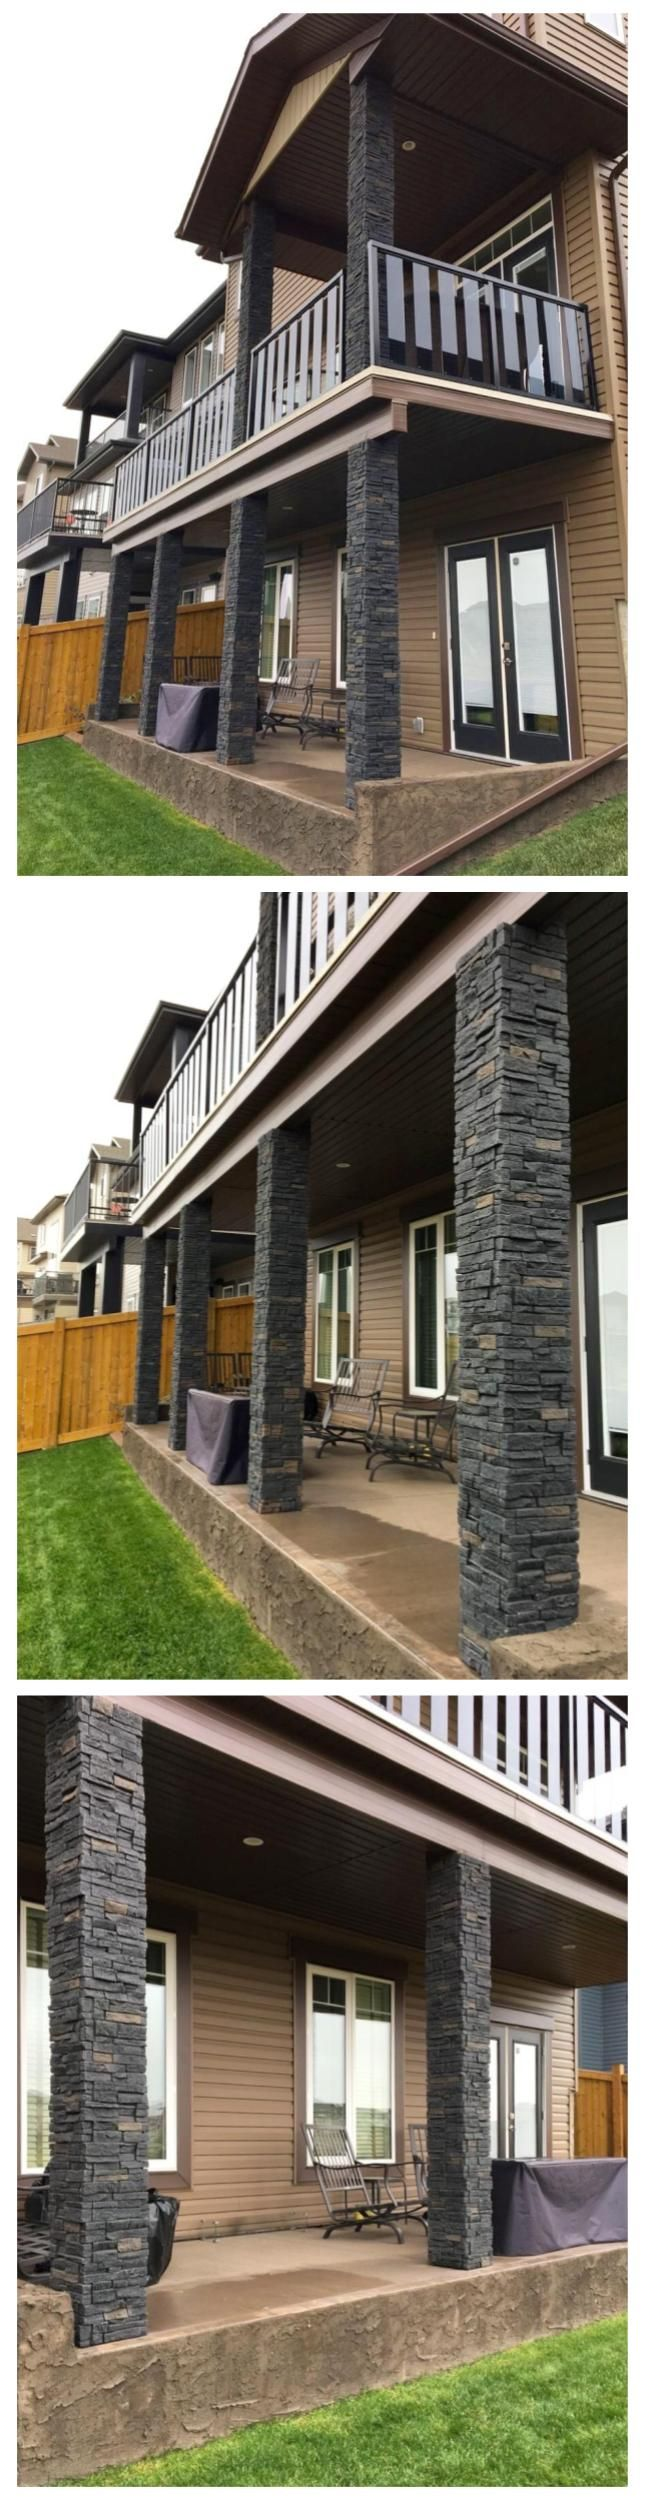 Quality Stone Stacked Stone (Black Blend) [Black, Brown, Grey, Gray, Dark, Skirting, Garage, Siding, Chimney, Store, House, Building, Versatile, Rustic, Traditional, Contemporary, Modern, Detail, Character, Renovation, Remodel, Texture, Decorative, Timeless, Panelled stone alternative, Tongue & Groove, Staggered Edges, Easy Install, DIY, Maintenance Free, High Density Polyurethane, Built Green, Realistic, Corners, R-Value, Durable, Light-weight] #everythingexteriorstore